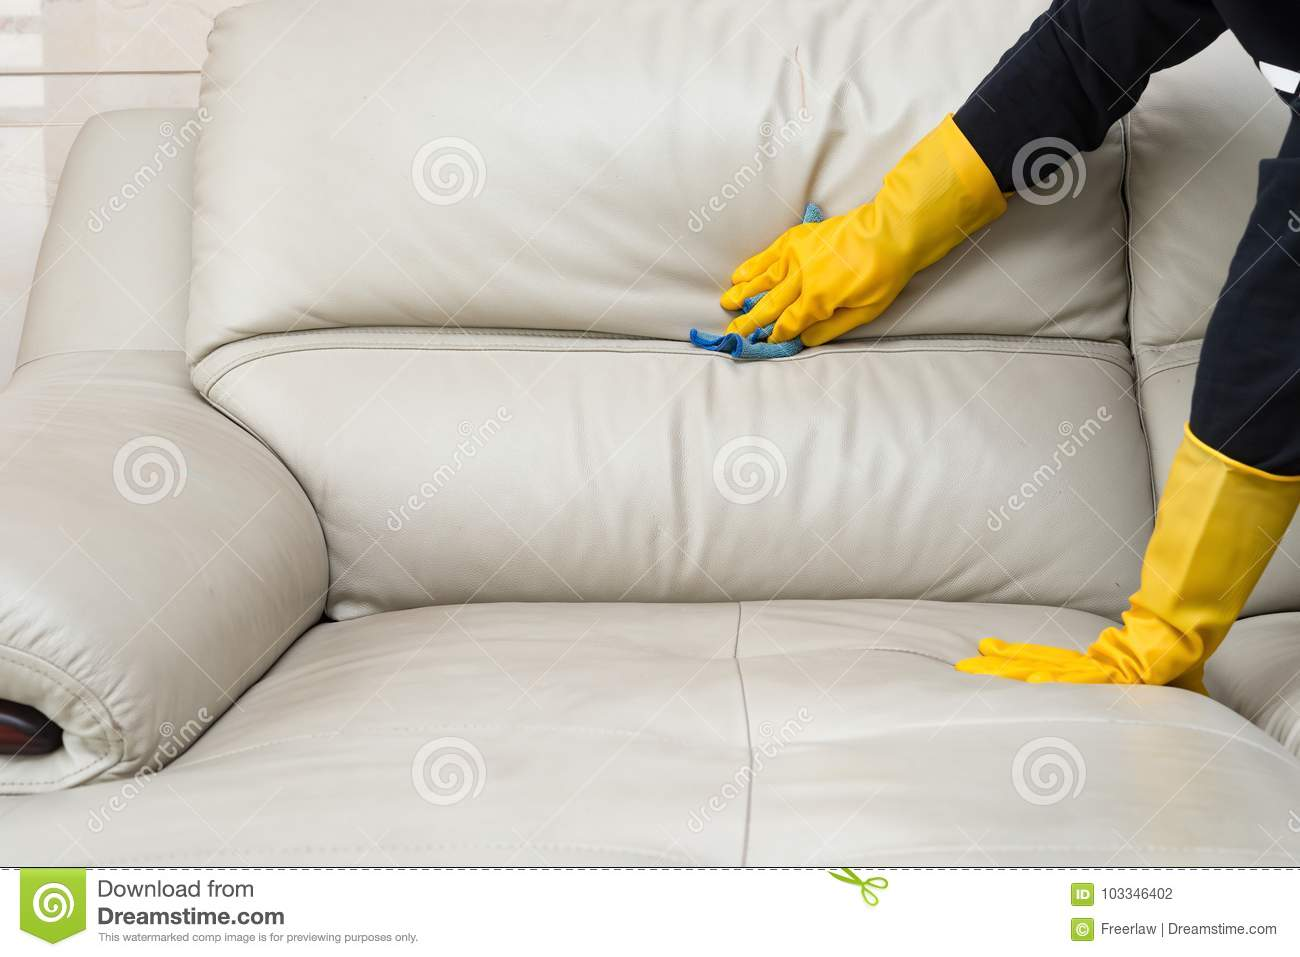 Cleaning leather sofa stock photo. Image of dust, household ...